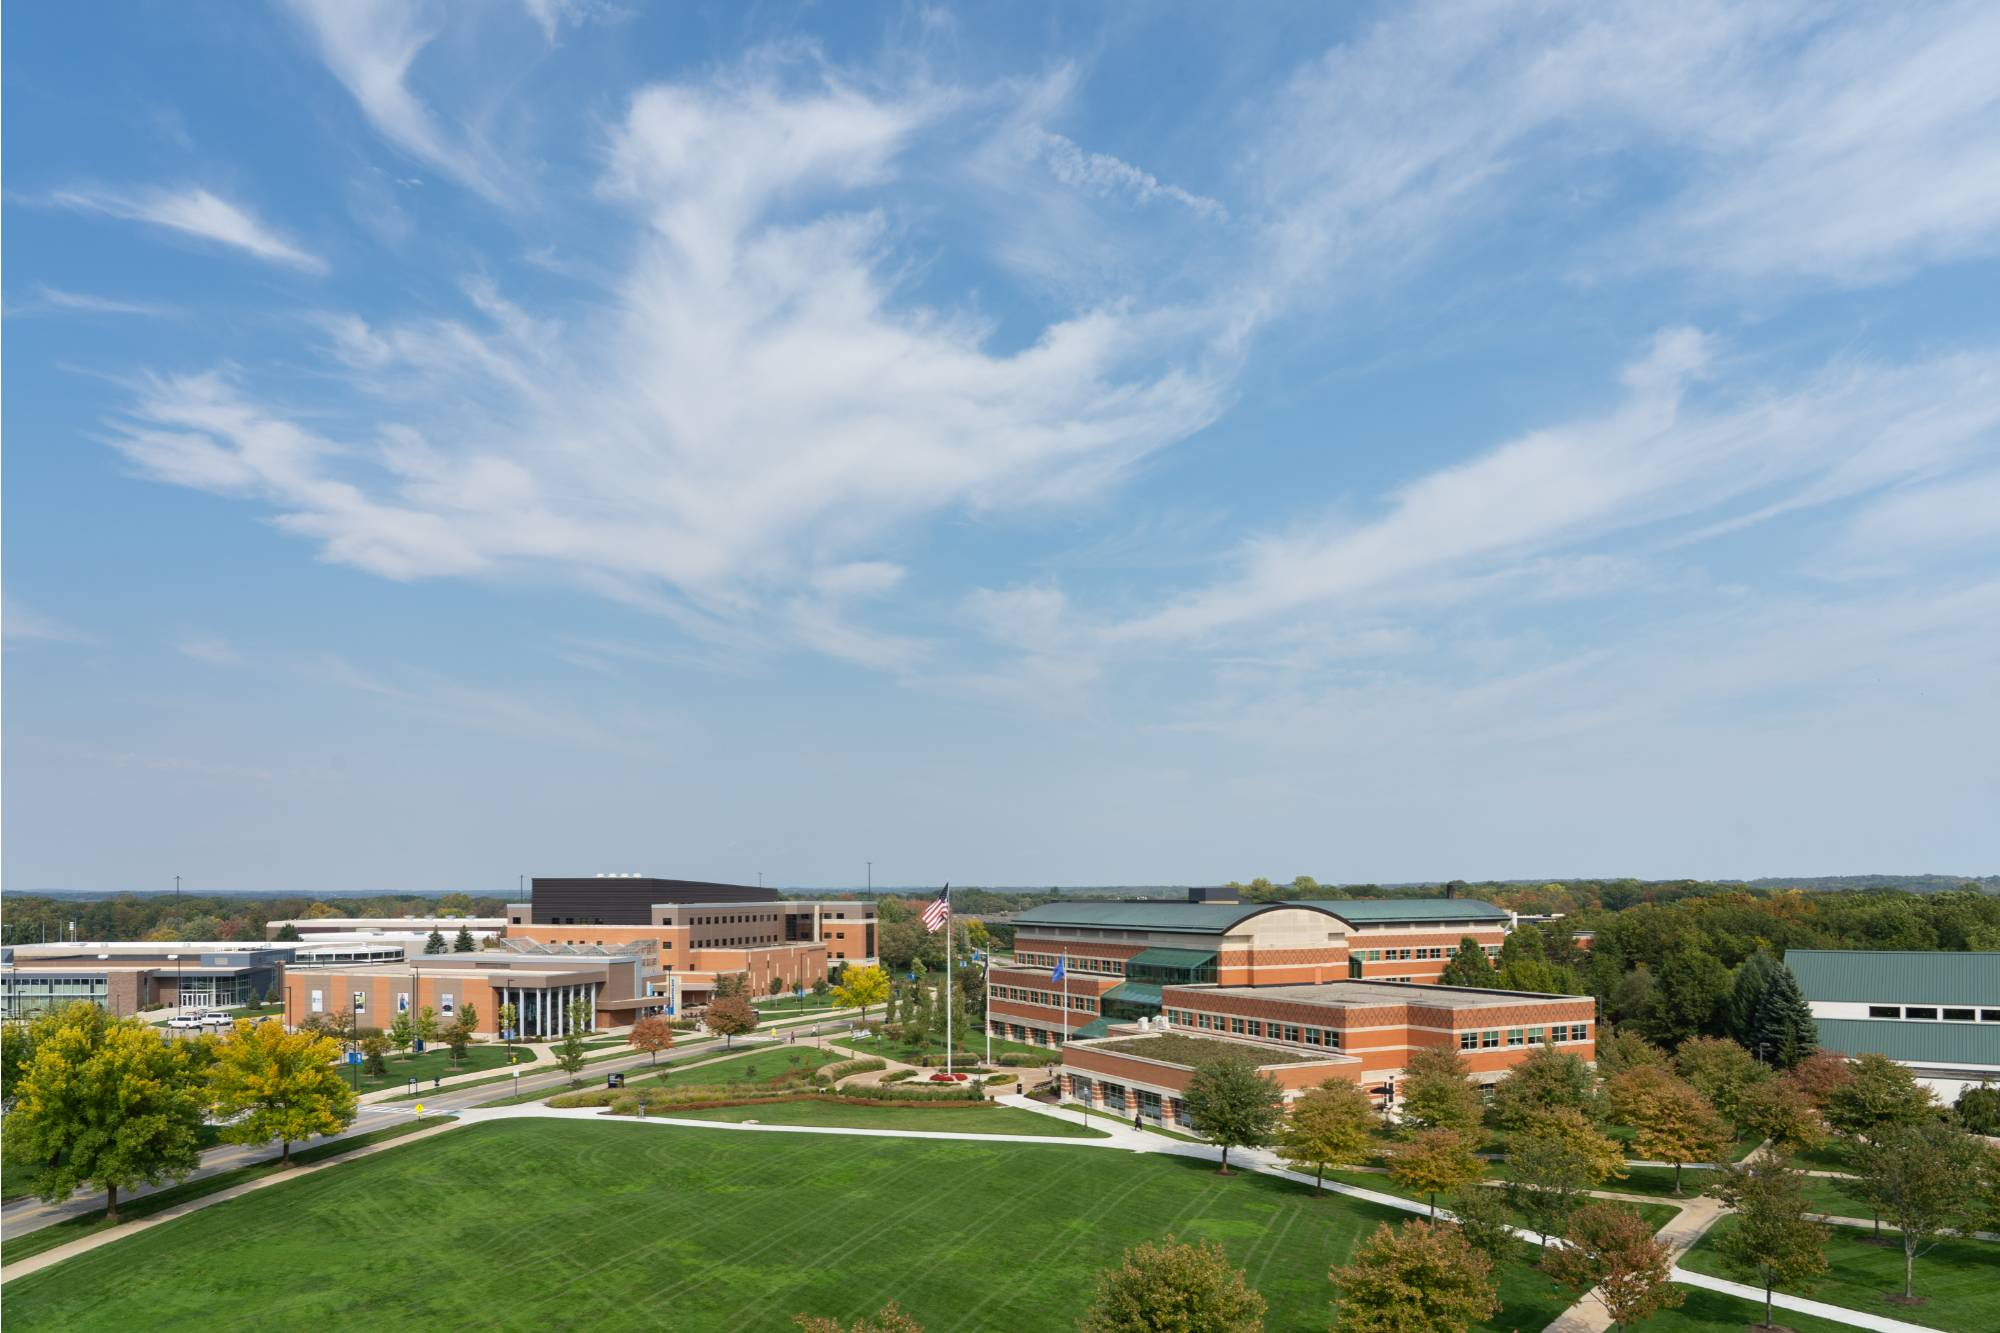 An aerial view of campus that includes the Student Services building.